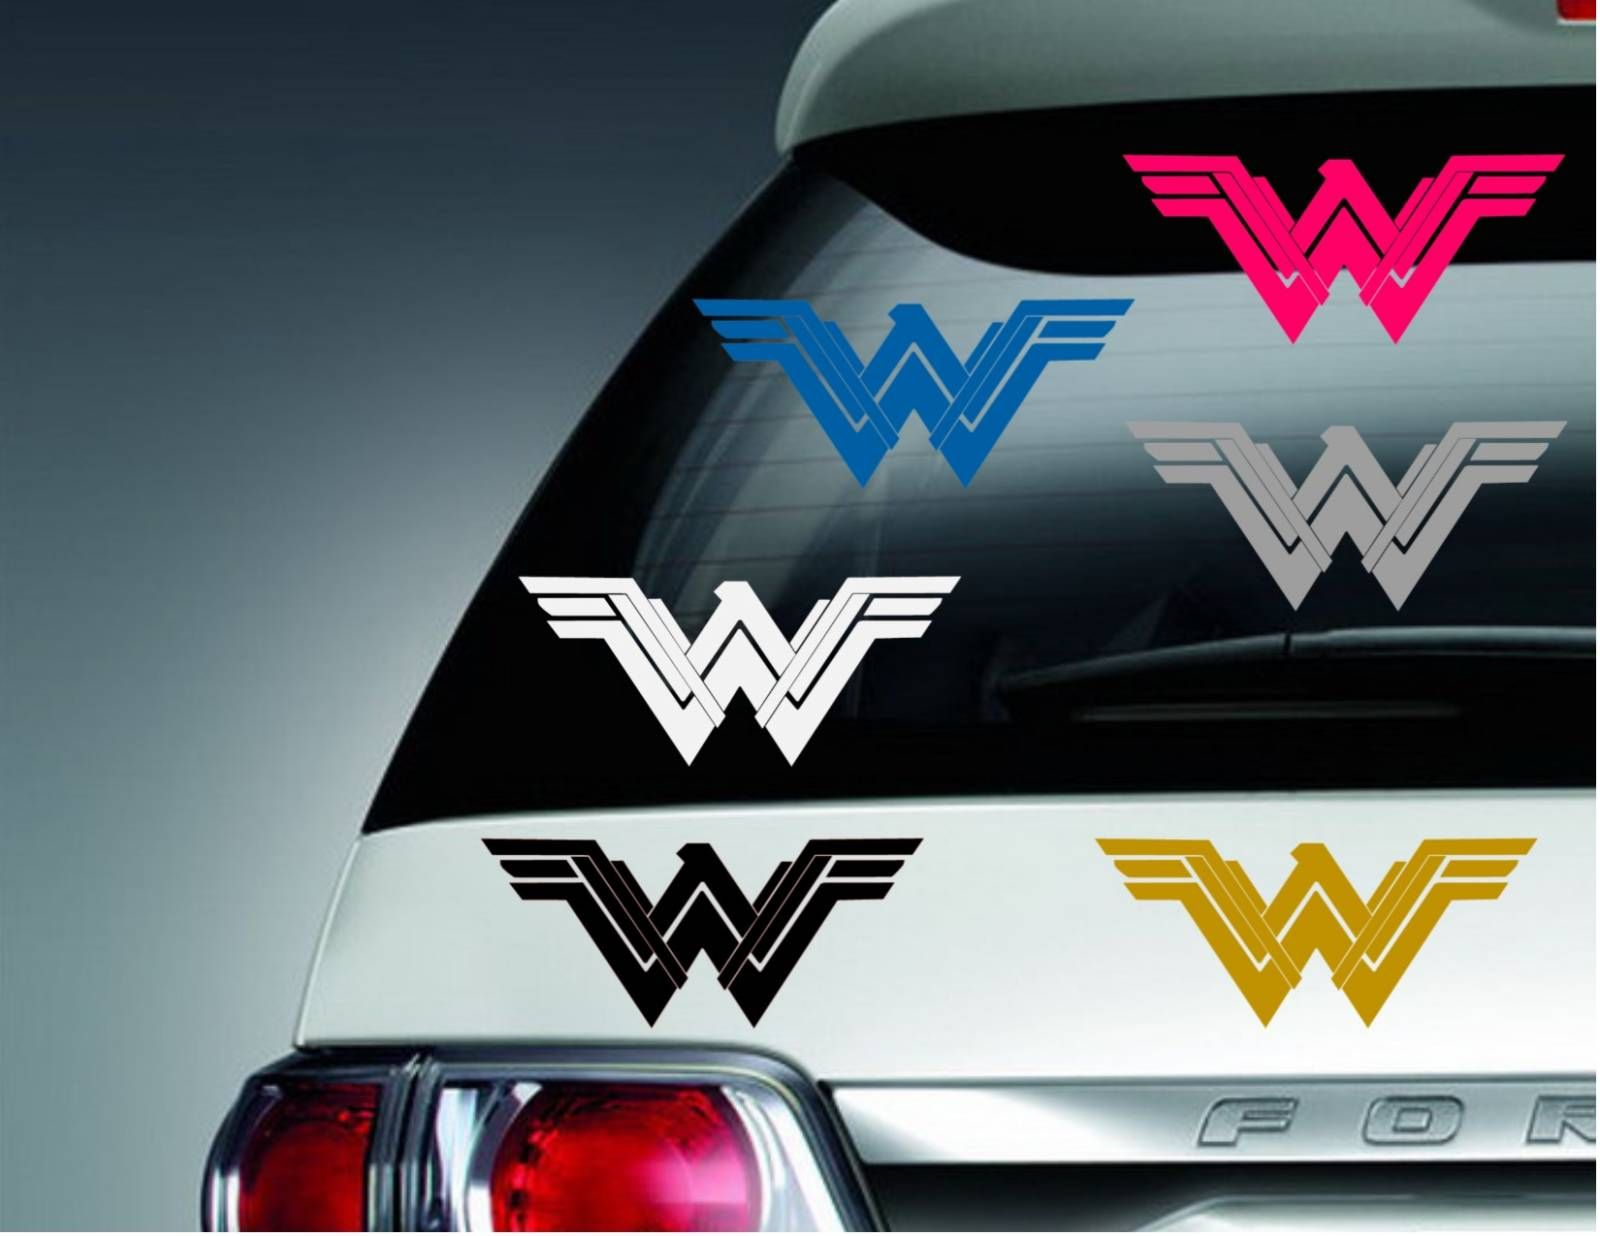 Wonder Woman Vinyl Decal Sticker In Many Colors And Sizes For Laptop Car Truck Wall Window Tablet Tumbler A Vinyl Decals Vinyl Decal Stickers Faces Film [ 1236 x 1600 Pixel ]